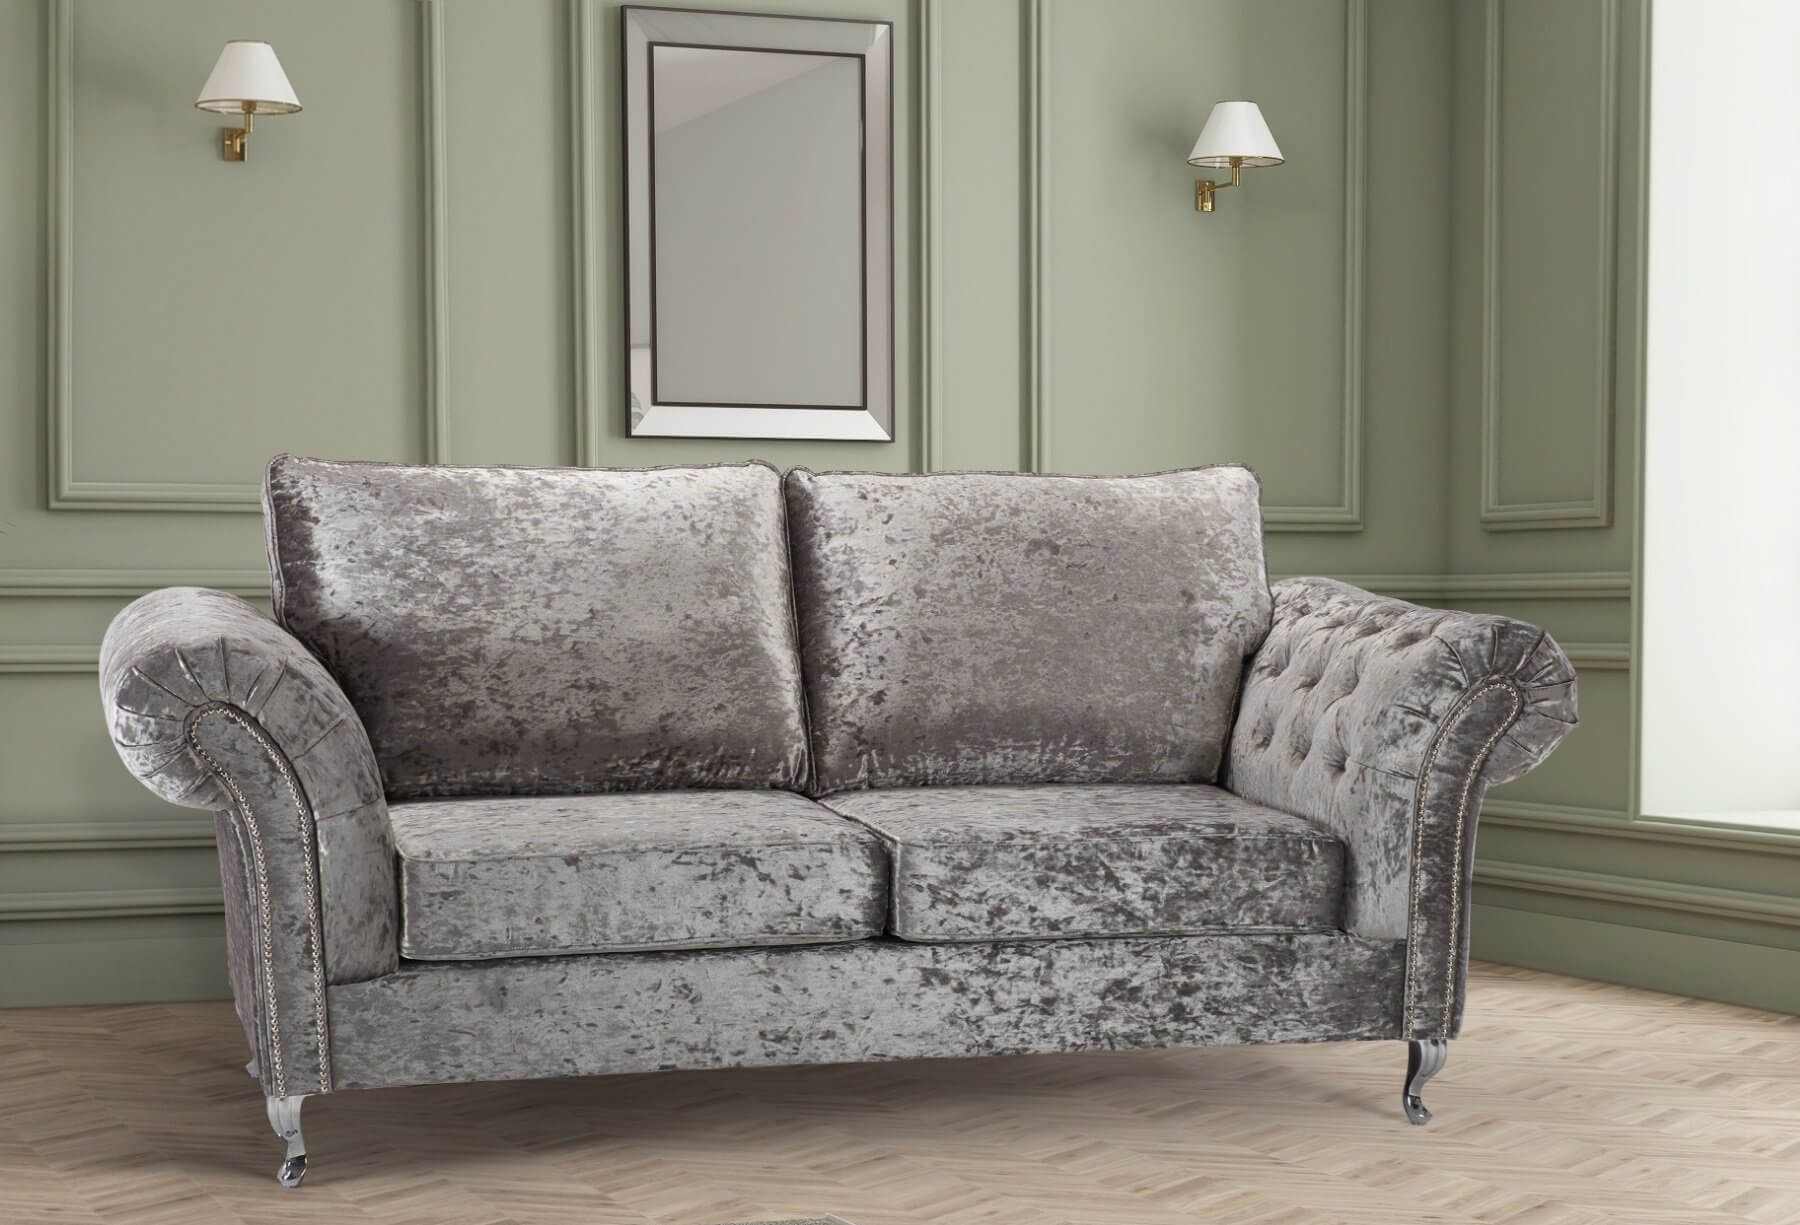 Crushed Velvet Silver 3 Seater Wilmslow Sofa with High Back